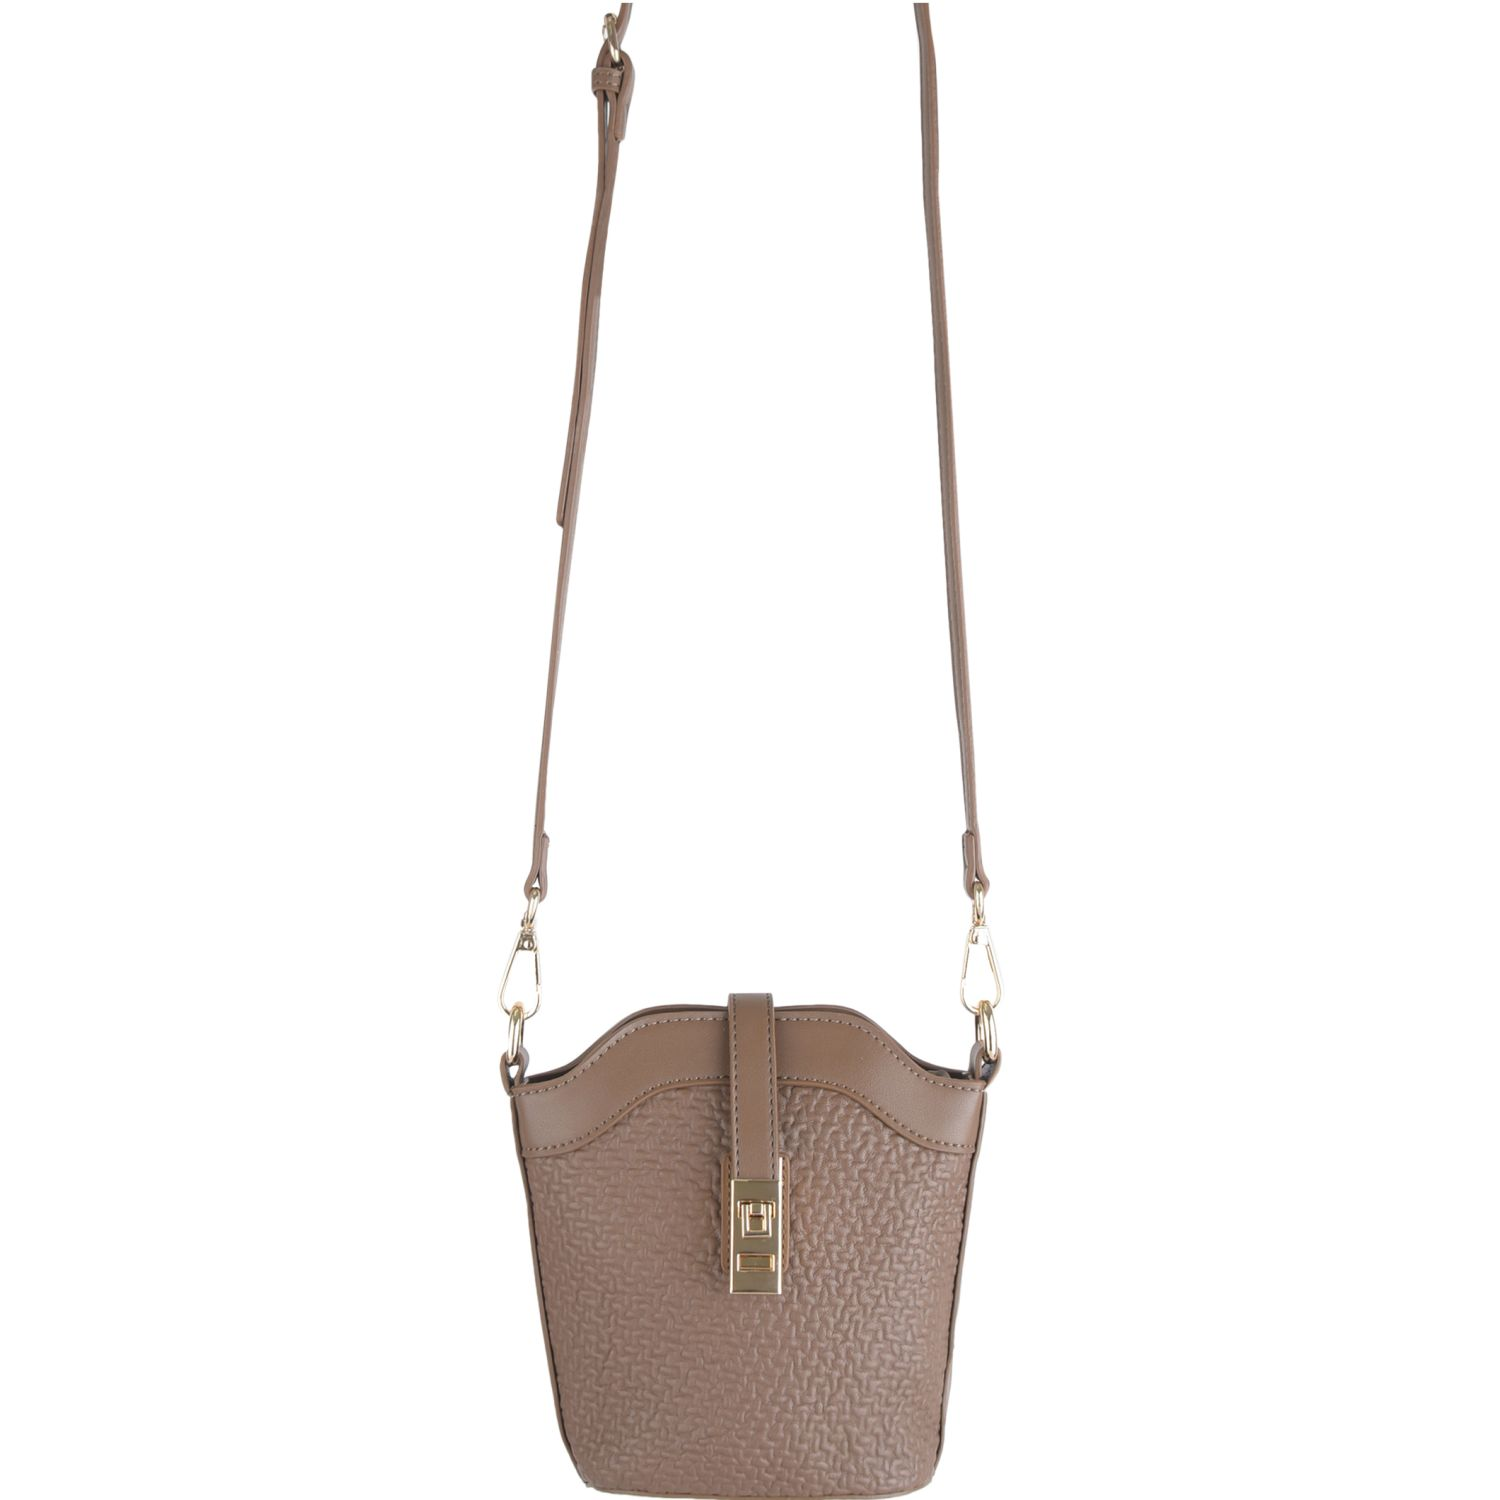 Platanitos dv-01684 Marron Totes